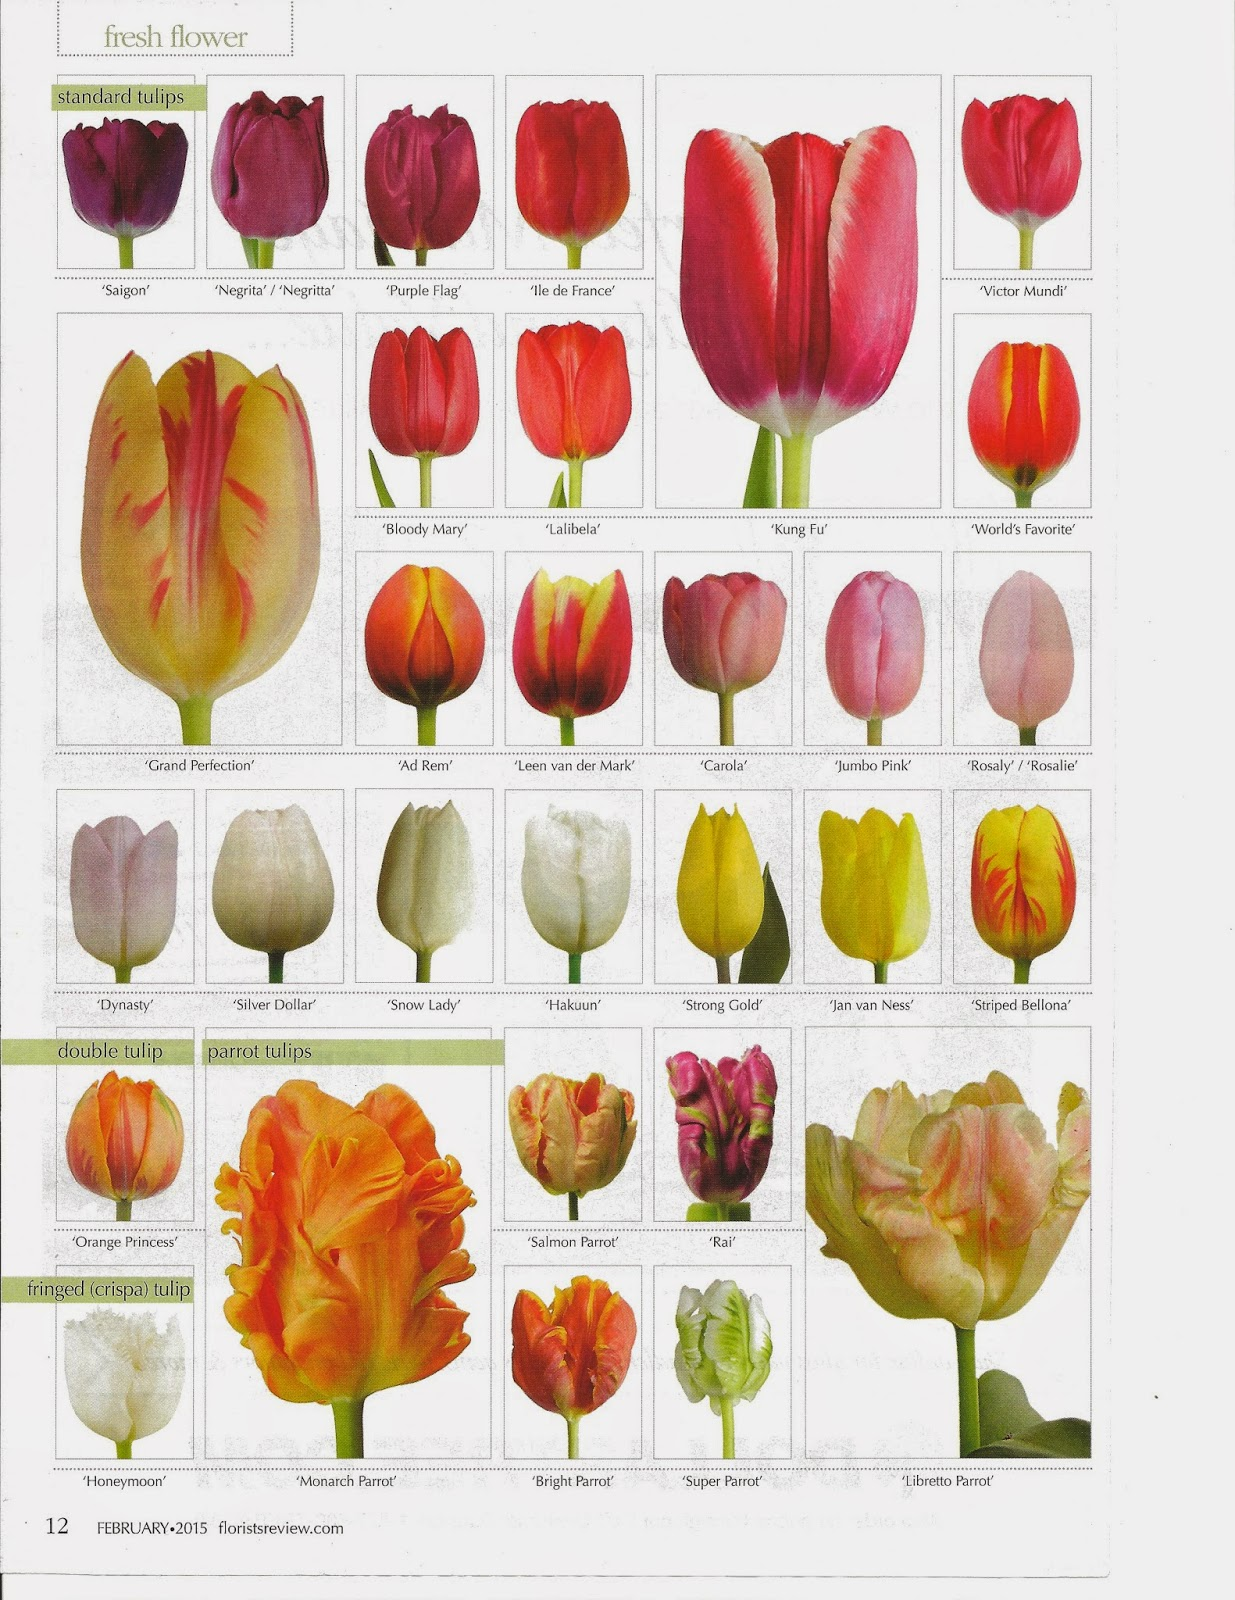 Tulip colors list fiori idea immagine flower classroom tulipss review magazine features this geenschuldenfo Gallery